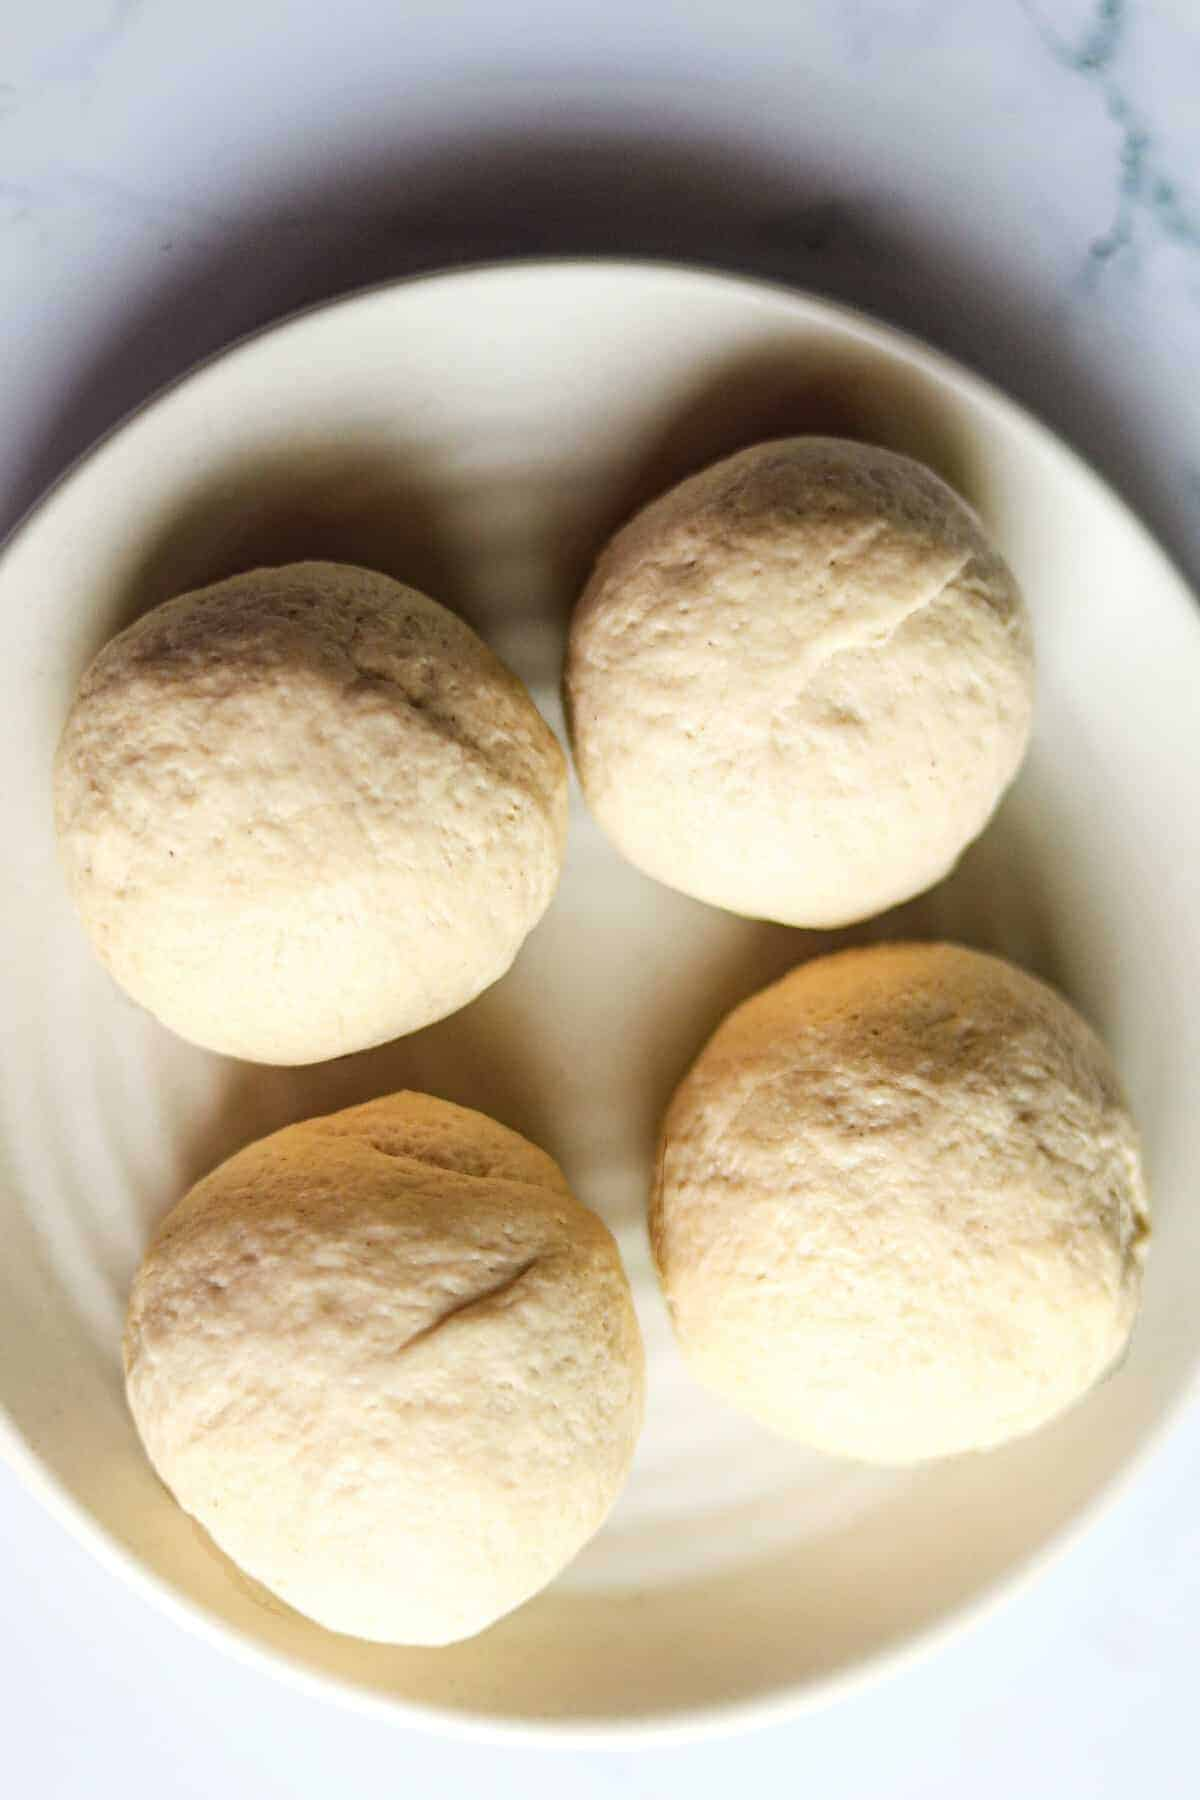 Four dough balls resting on a plate.